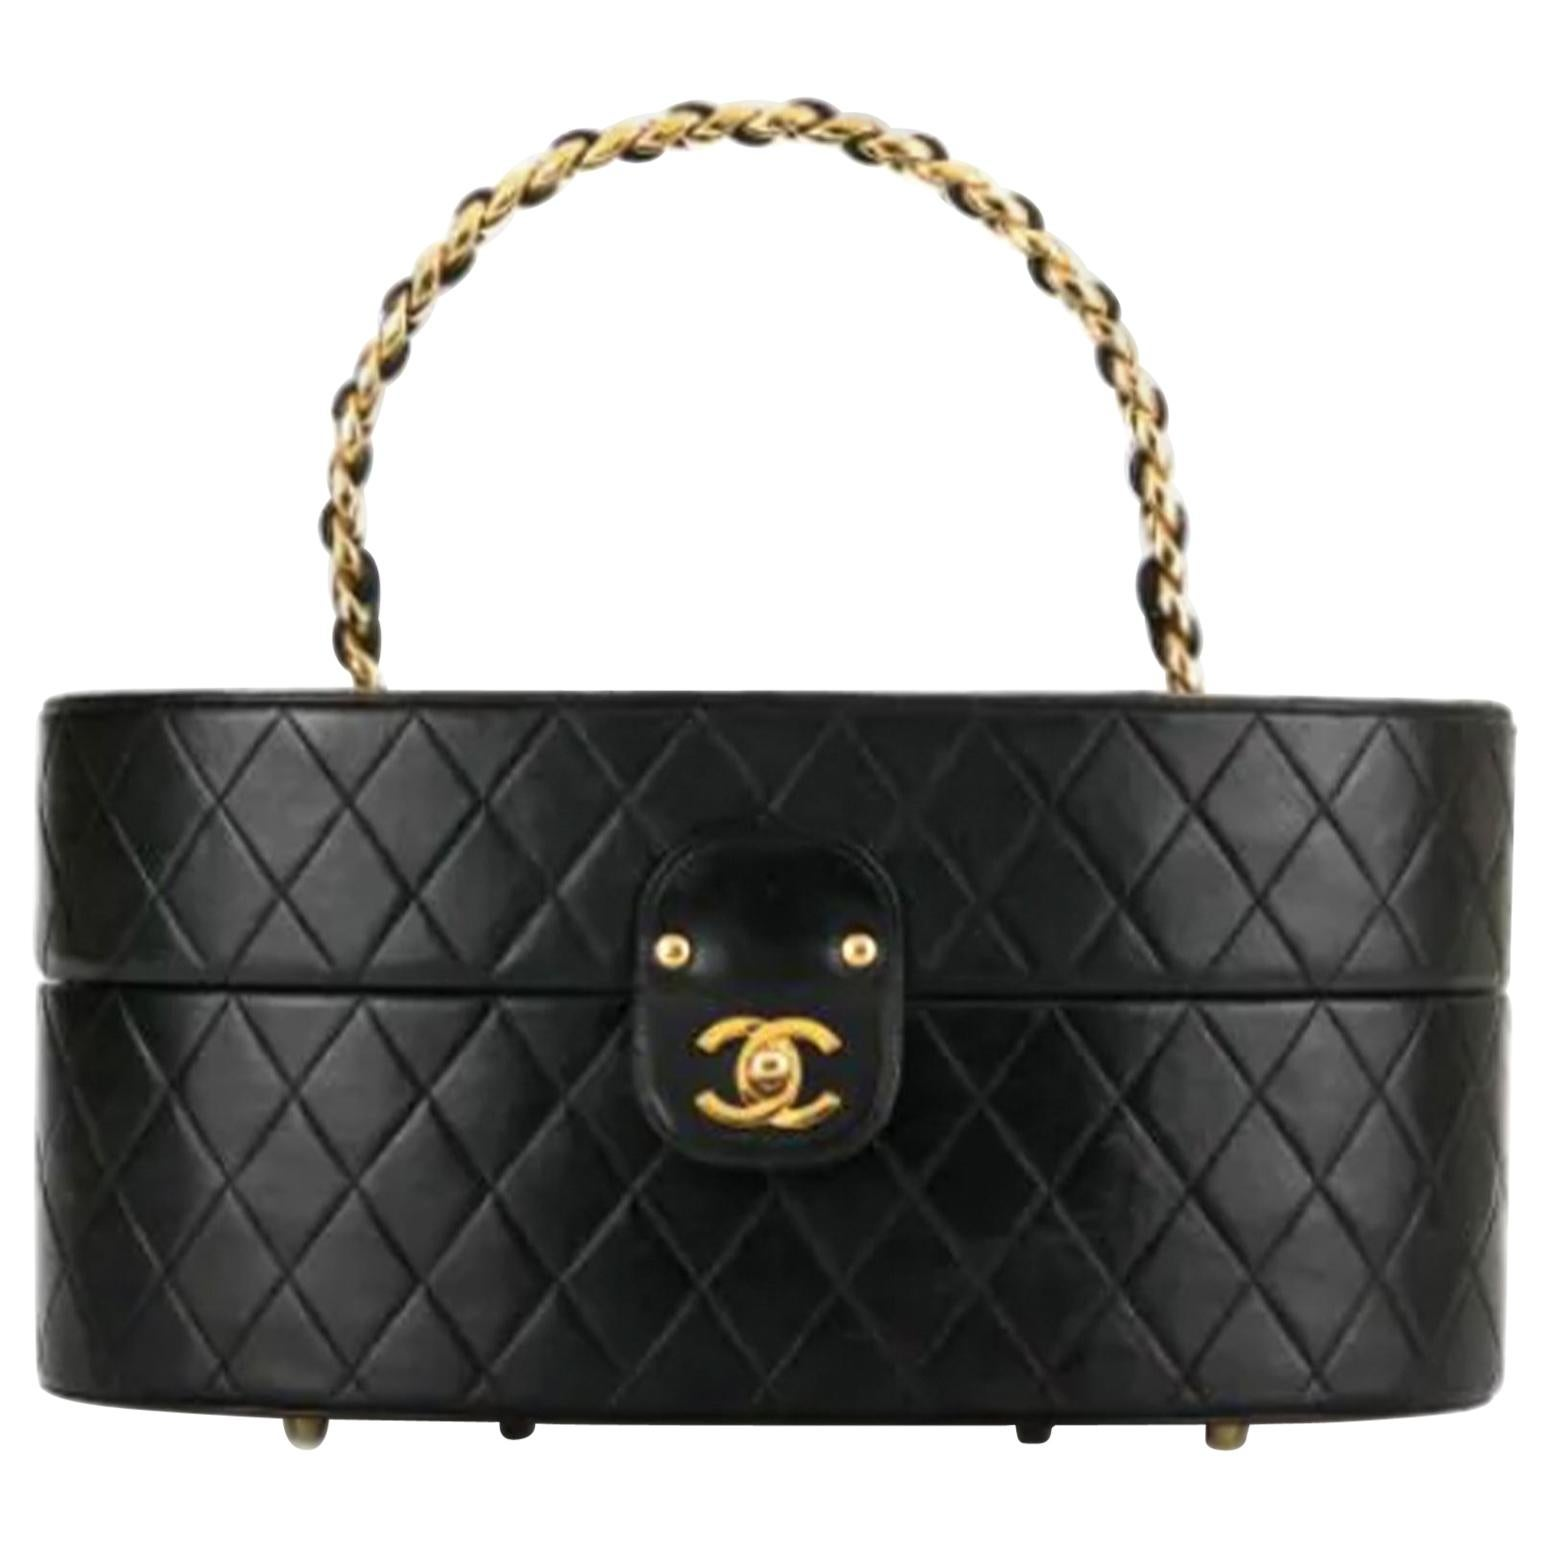 Chanel Vintage 1988 Quilted Black Lambskin Train Case Leather Home Decor Trunk